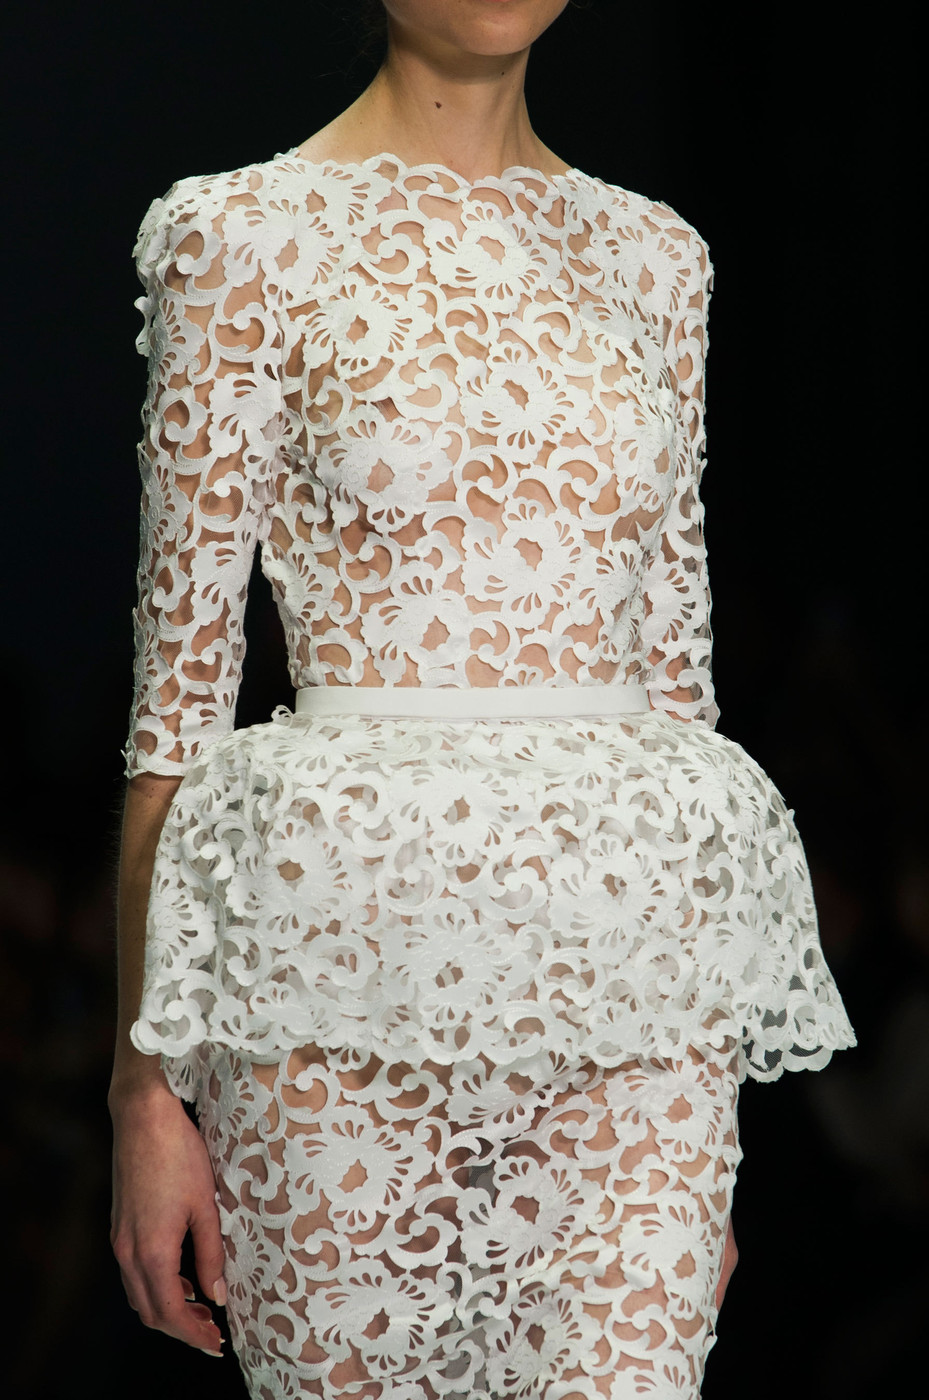 Raph Russo Haute Couture Spring/Summer 2015